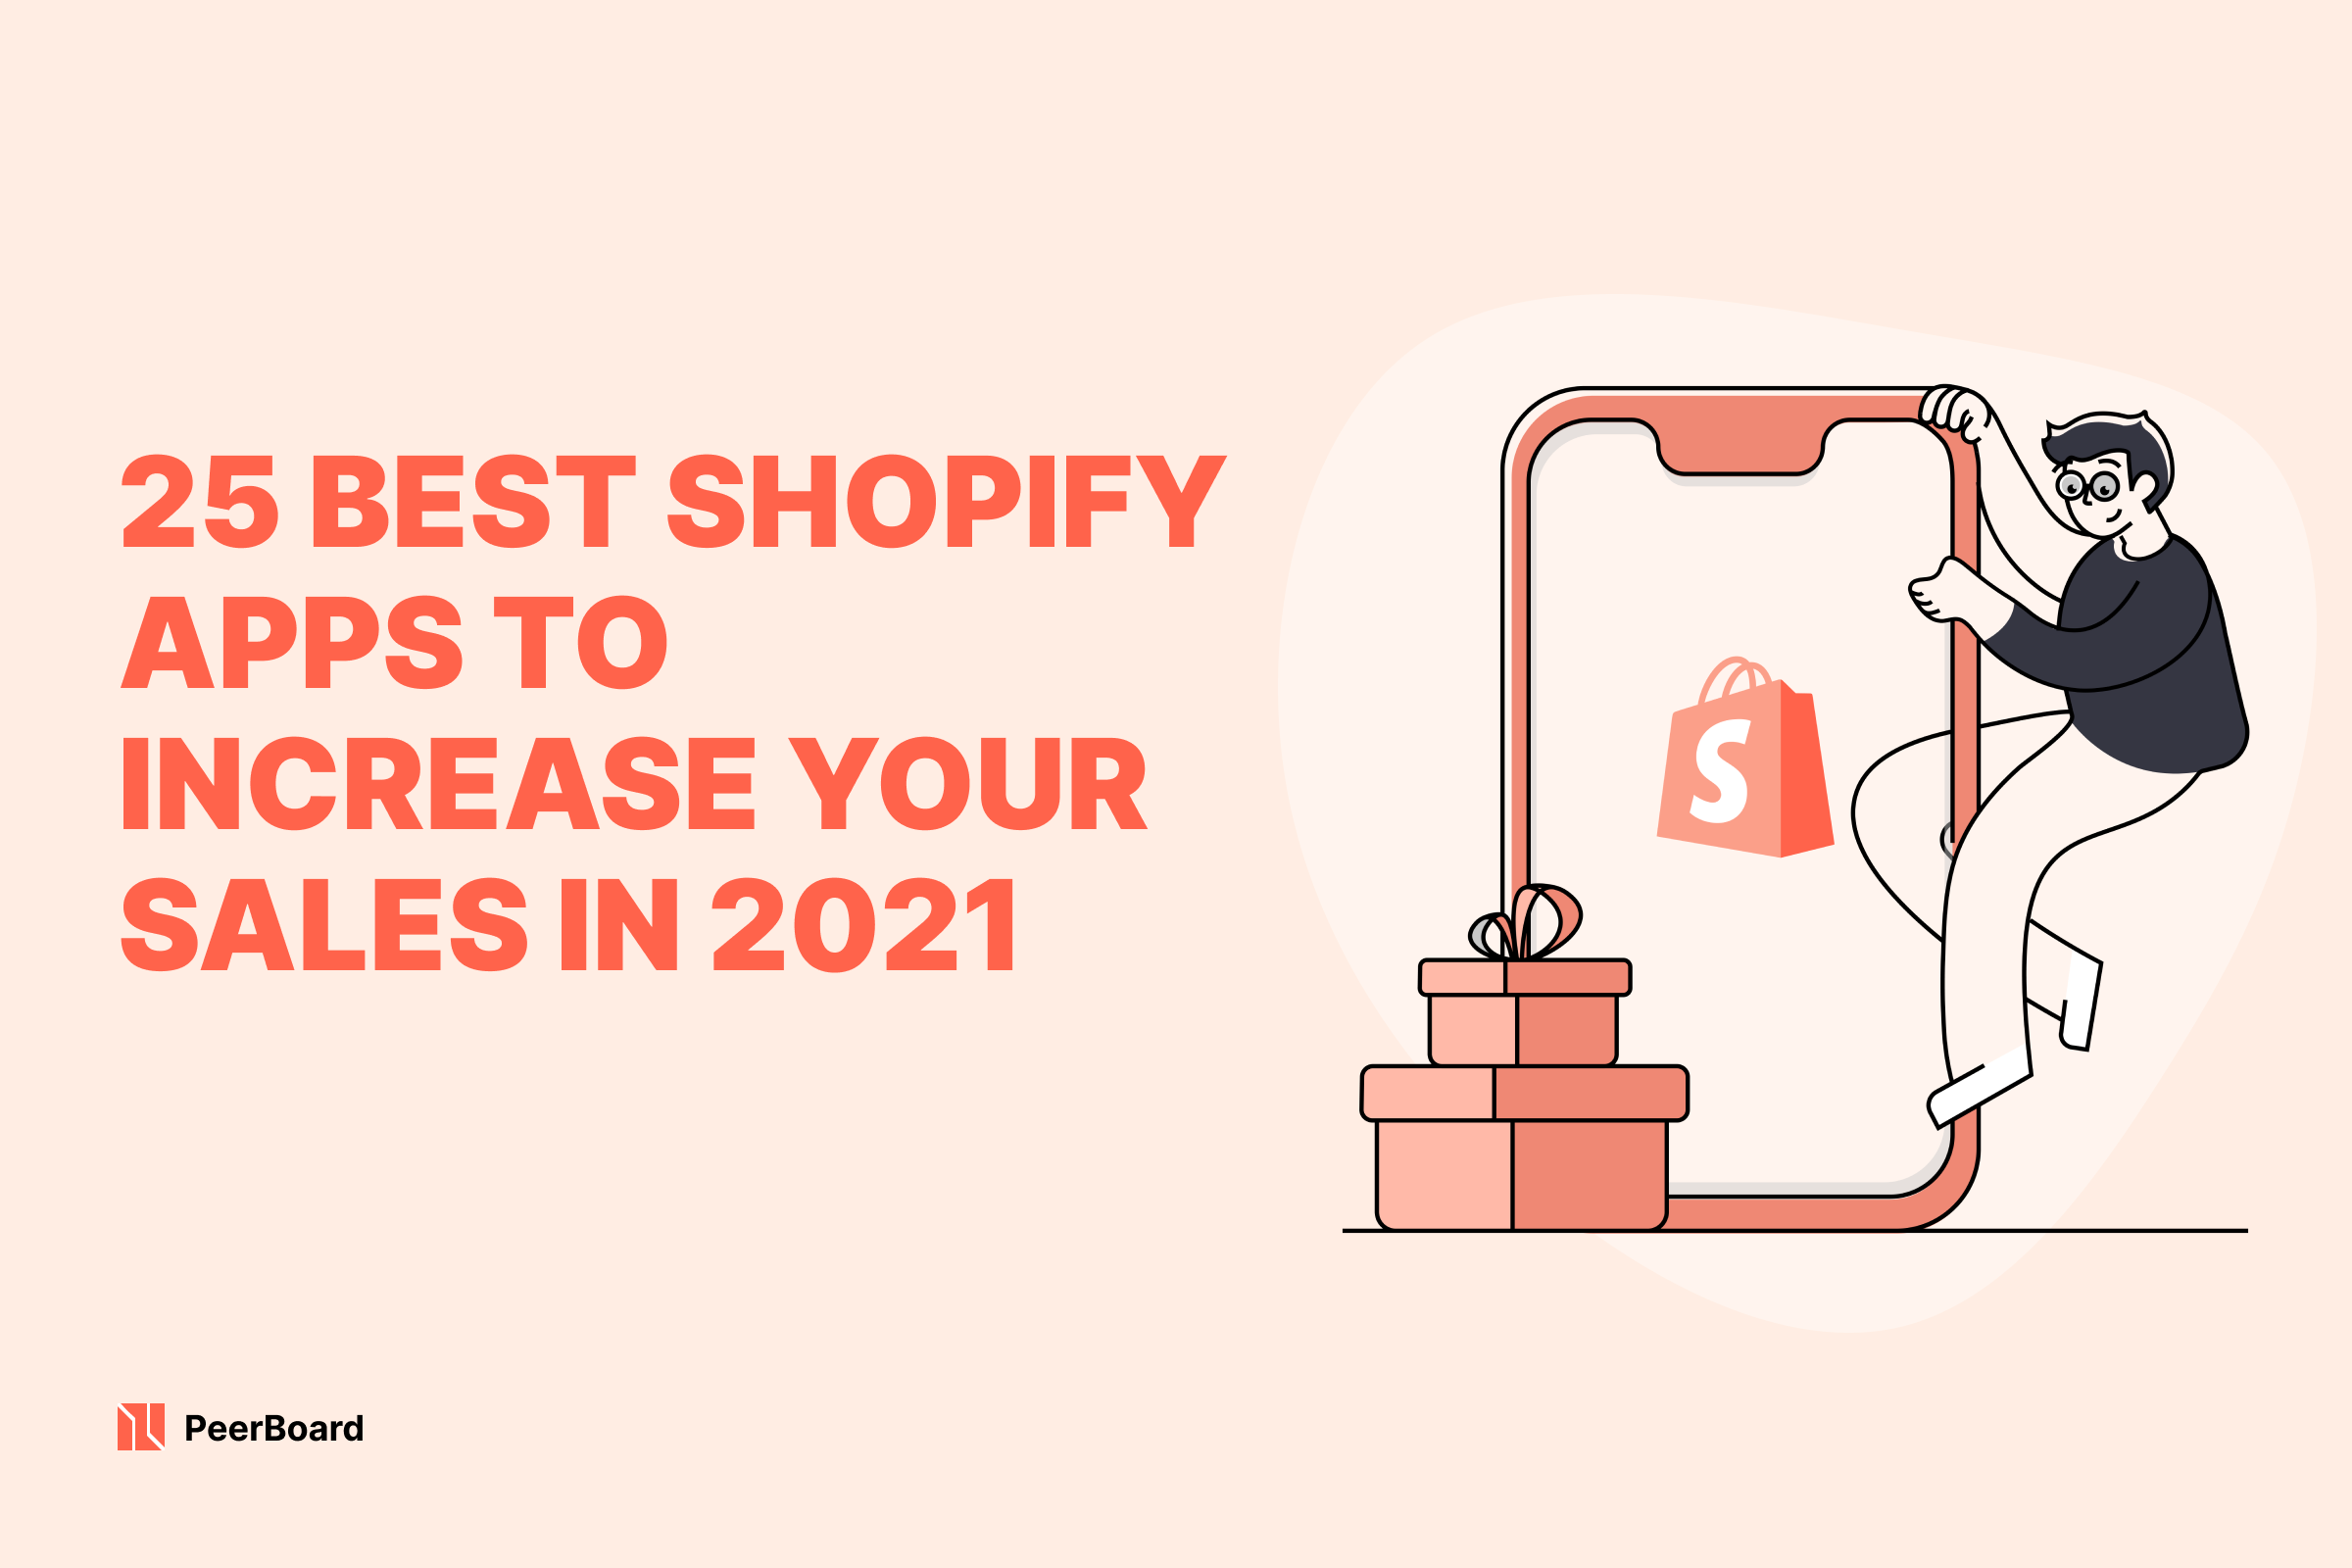 25 Best Shopify Apps to Increase Your Sales in 2021